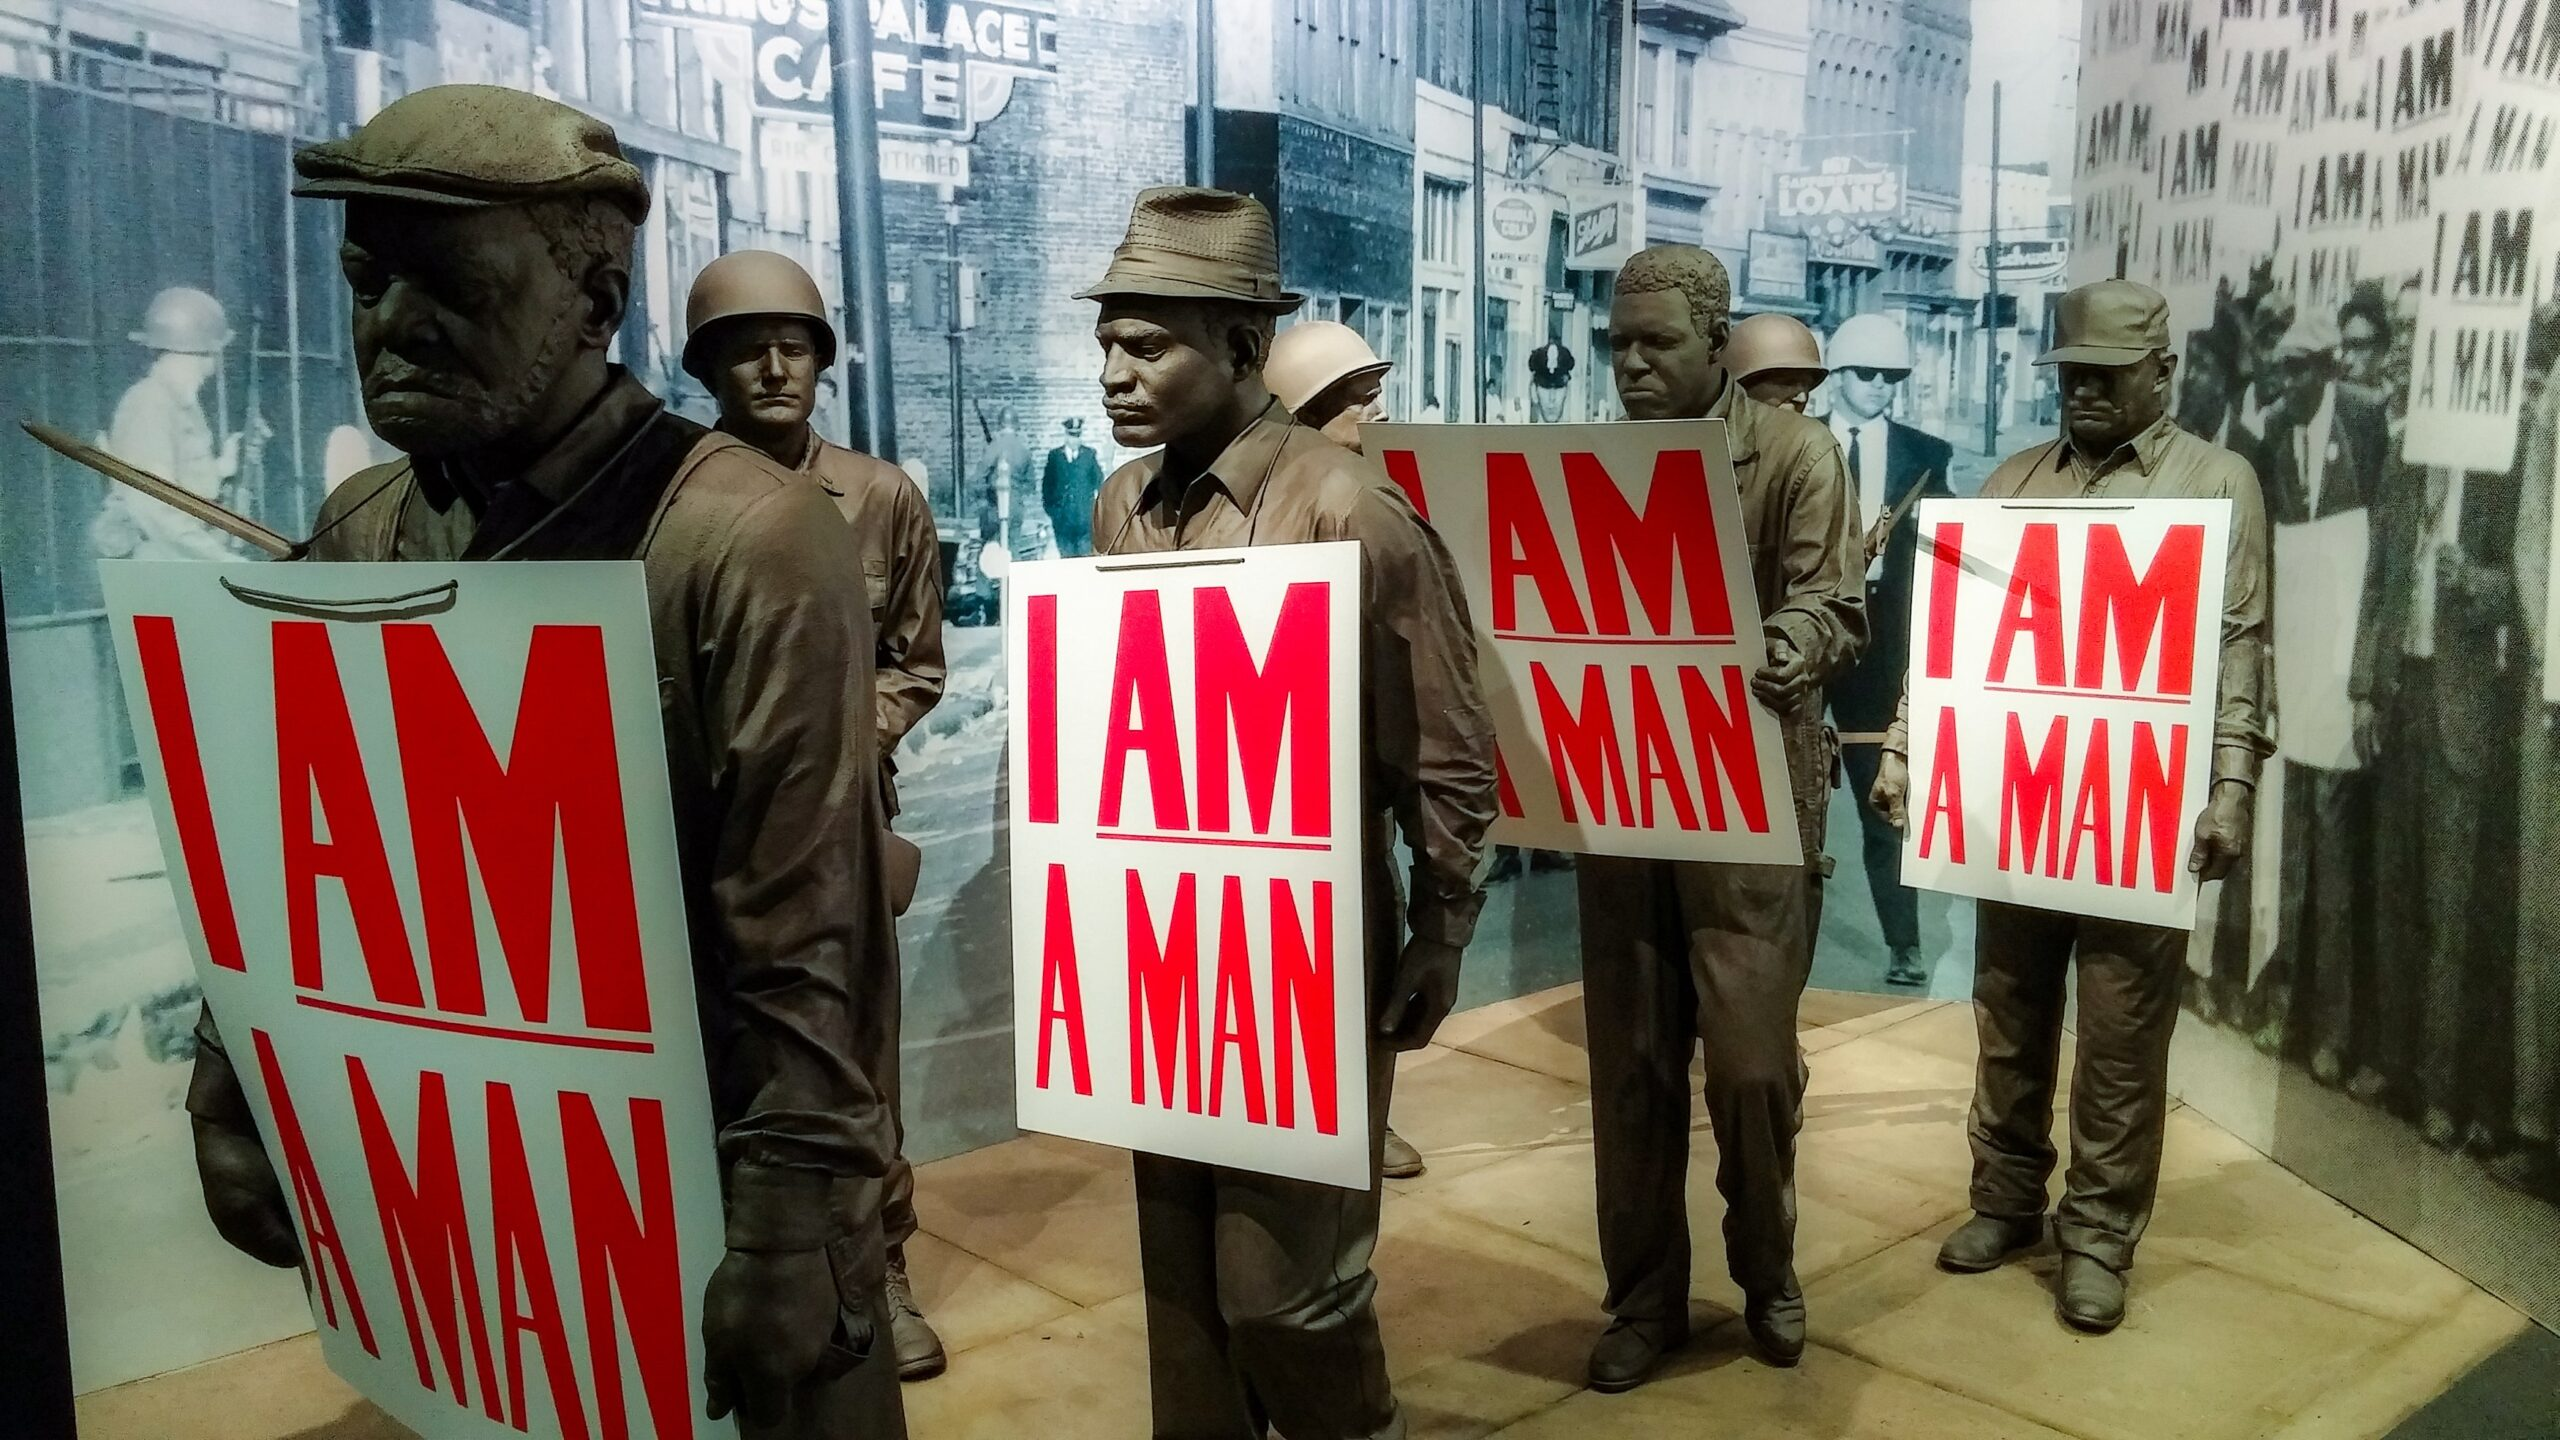 5. National Civil Rights Museum